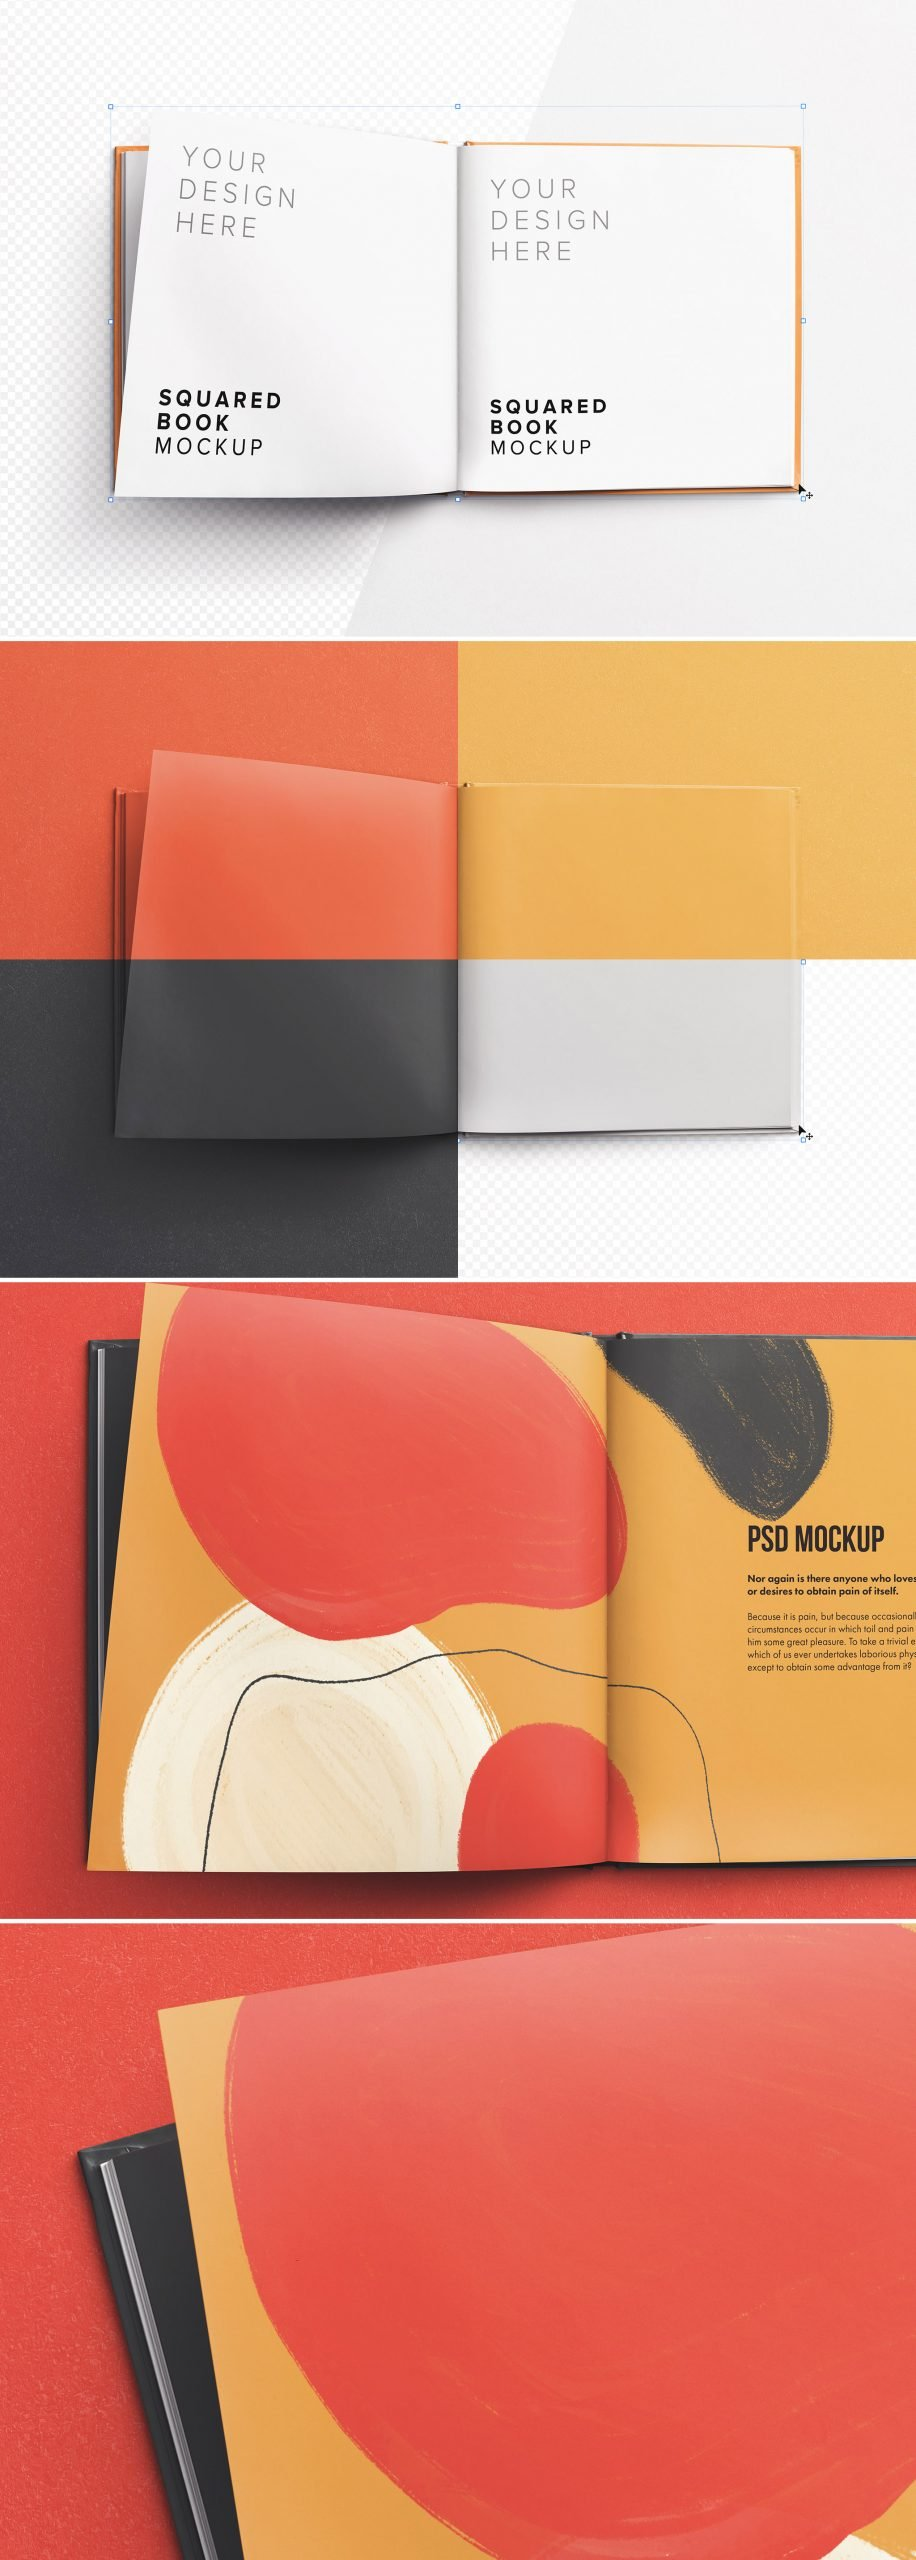 book squared opened left 4 page mockup Preview1 scaled